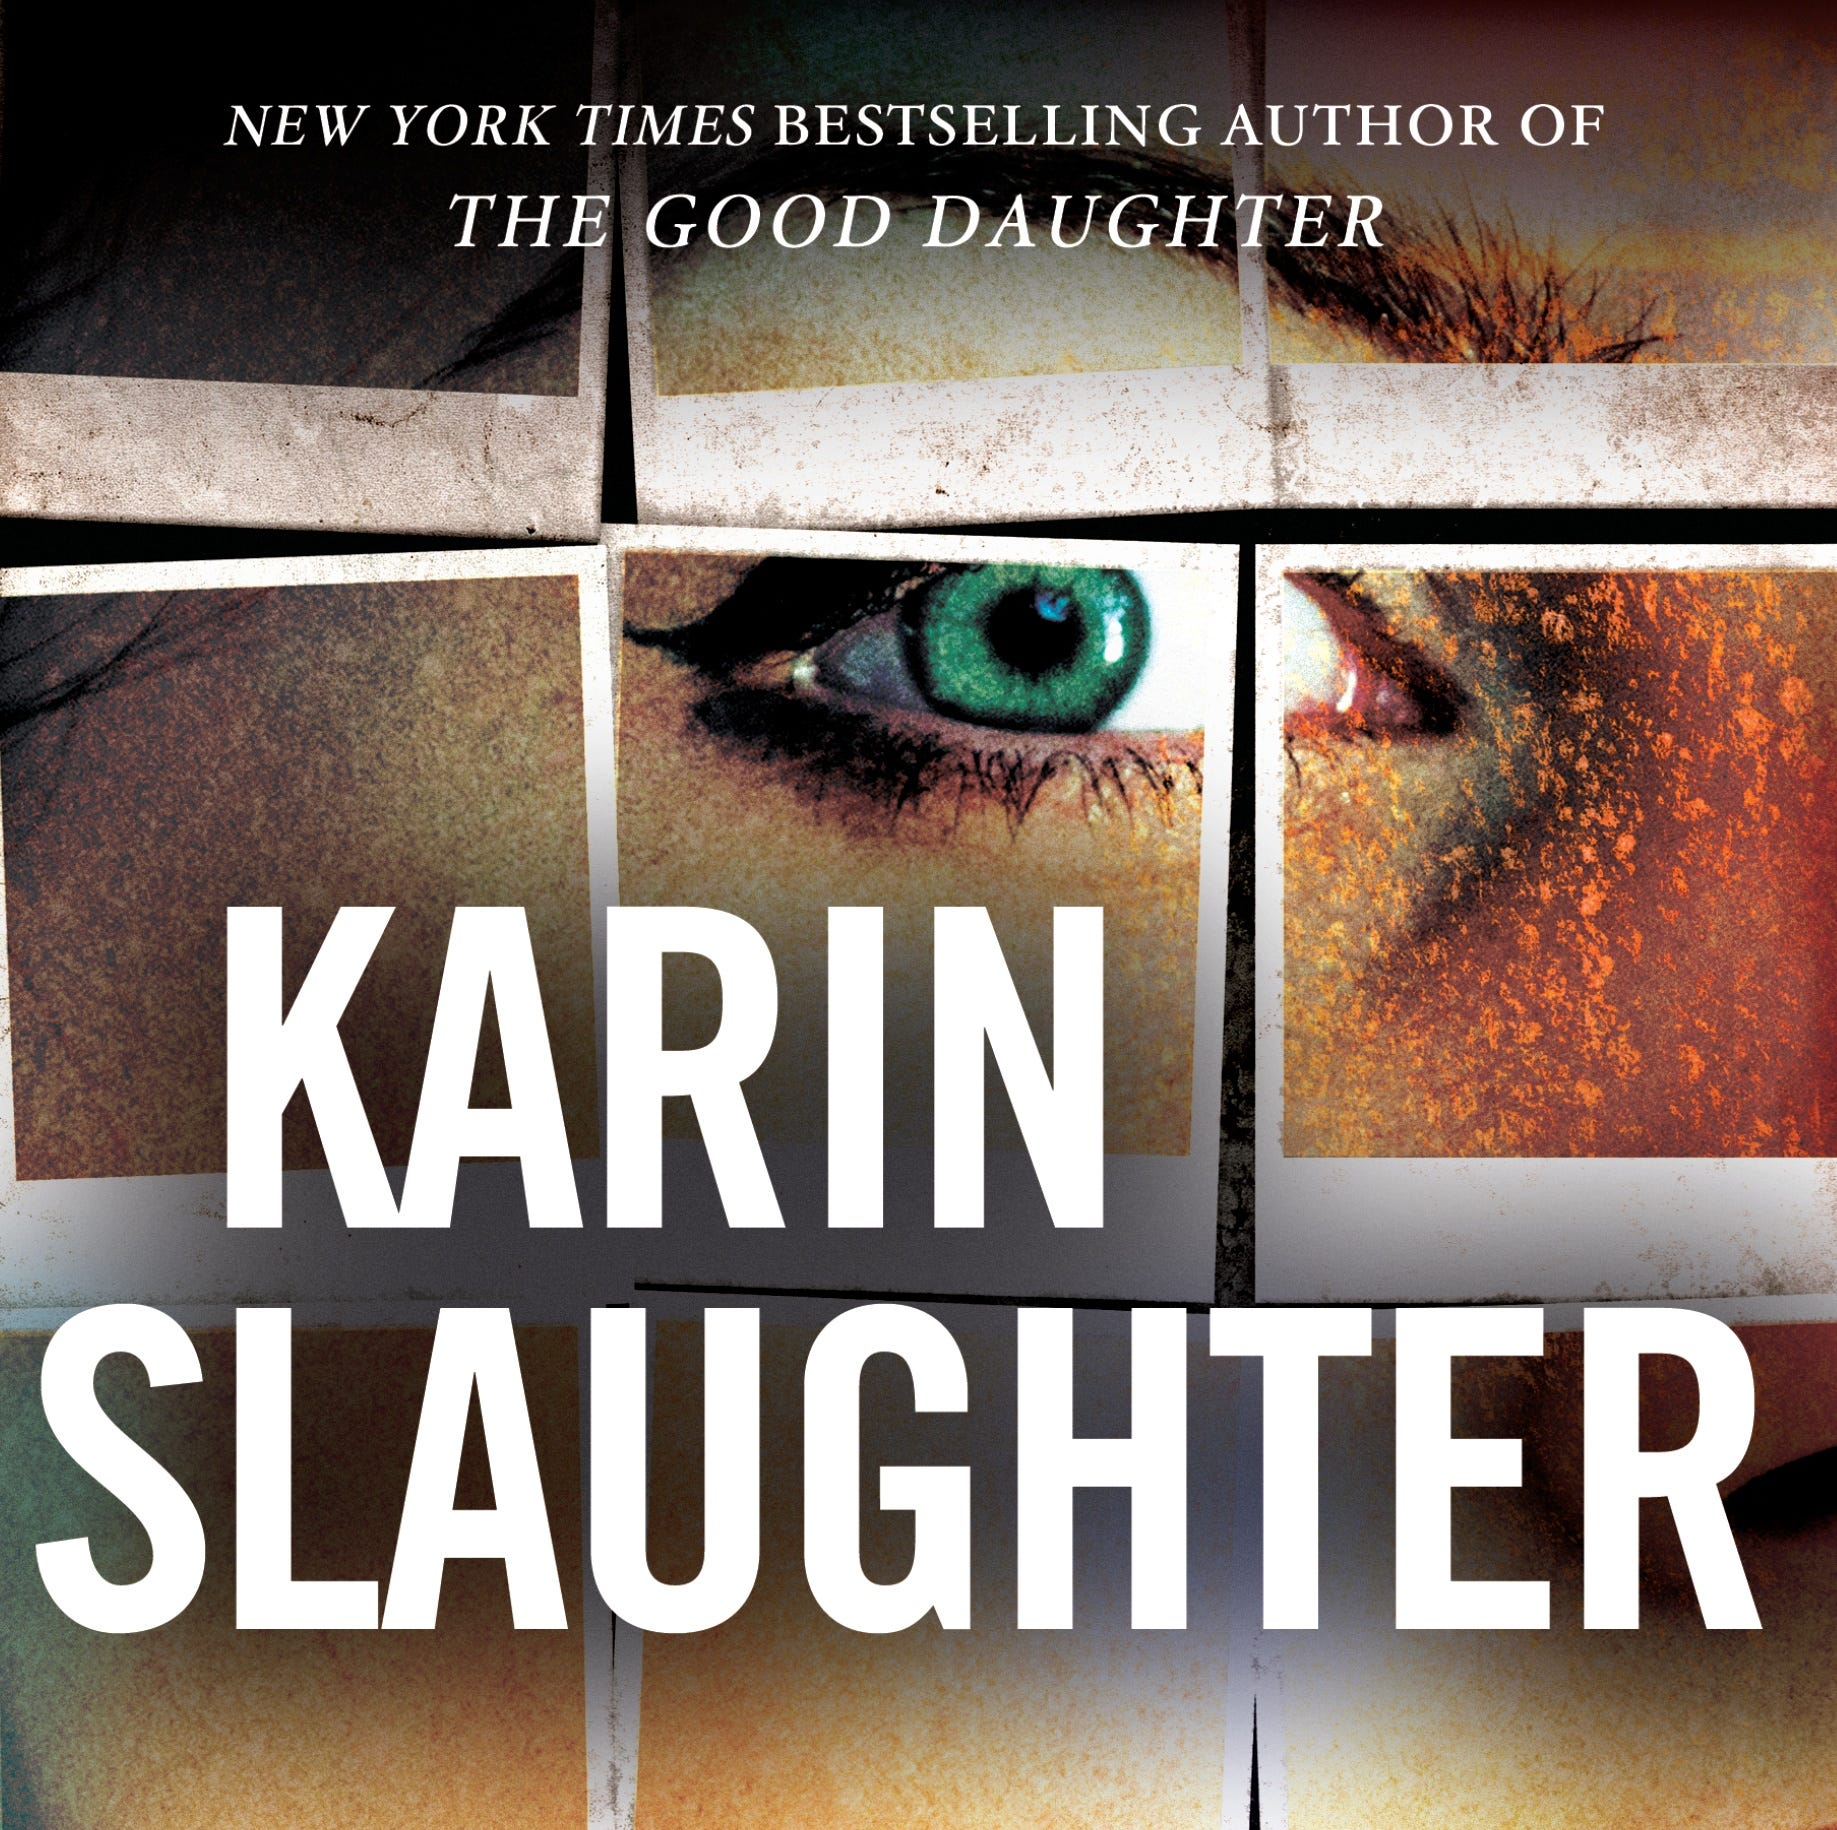 5 new books not to miss this week, including Karin Slaughter's  thriller, 'Pieces of Her'